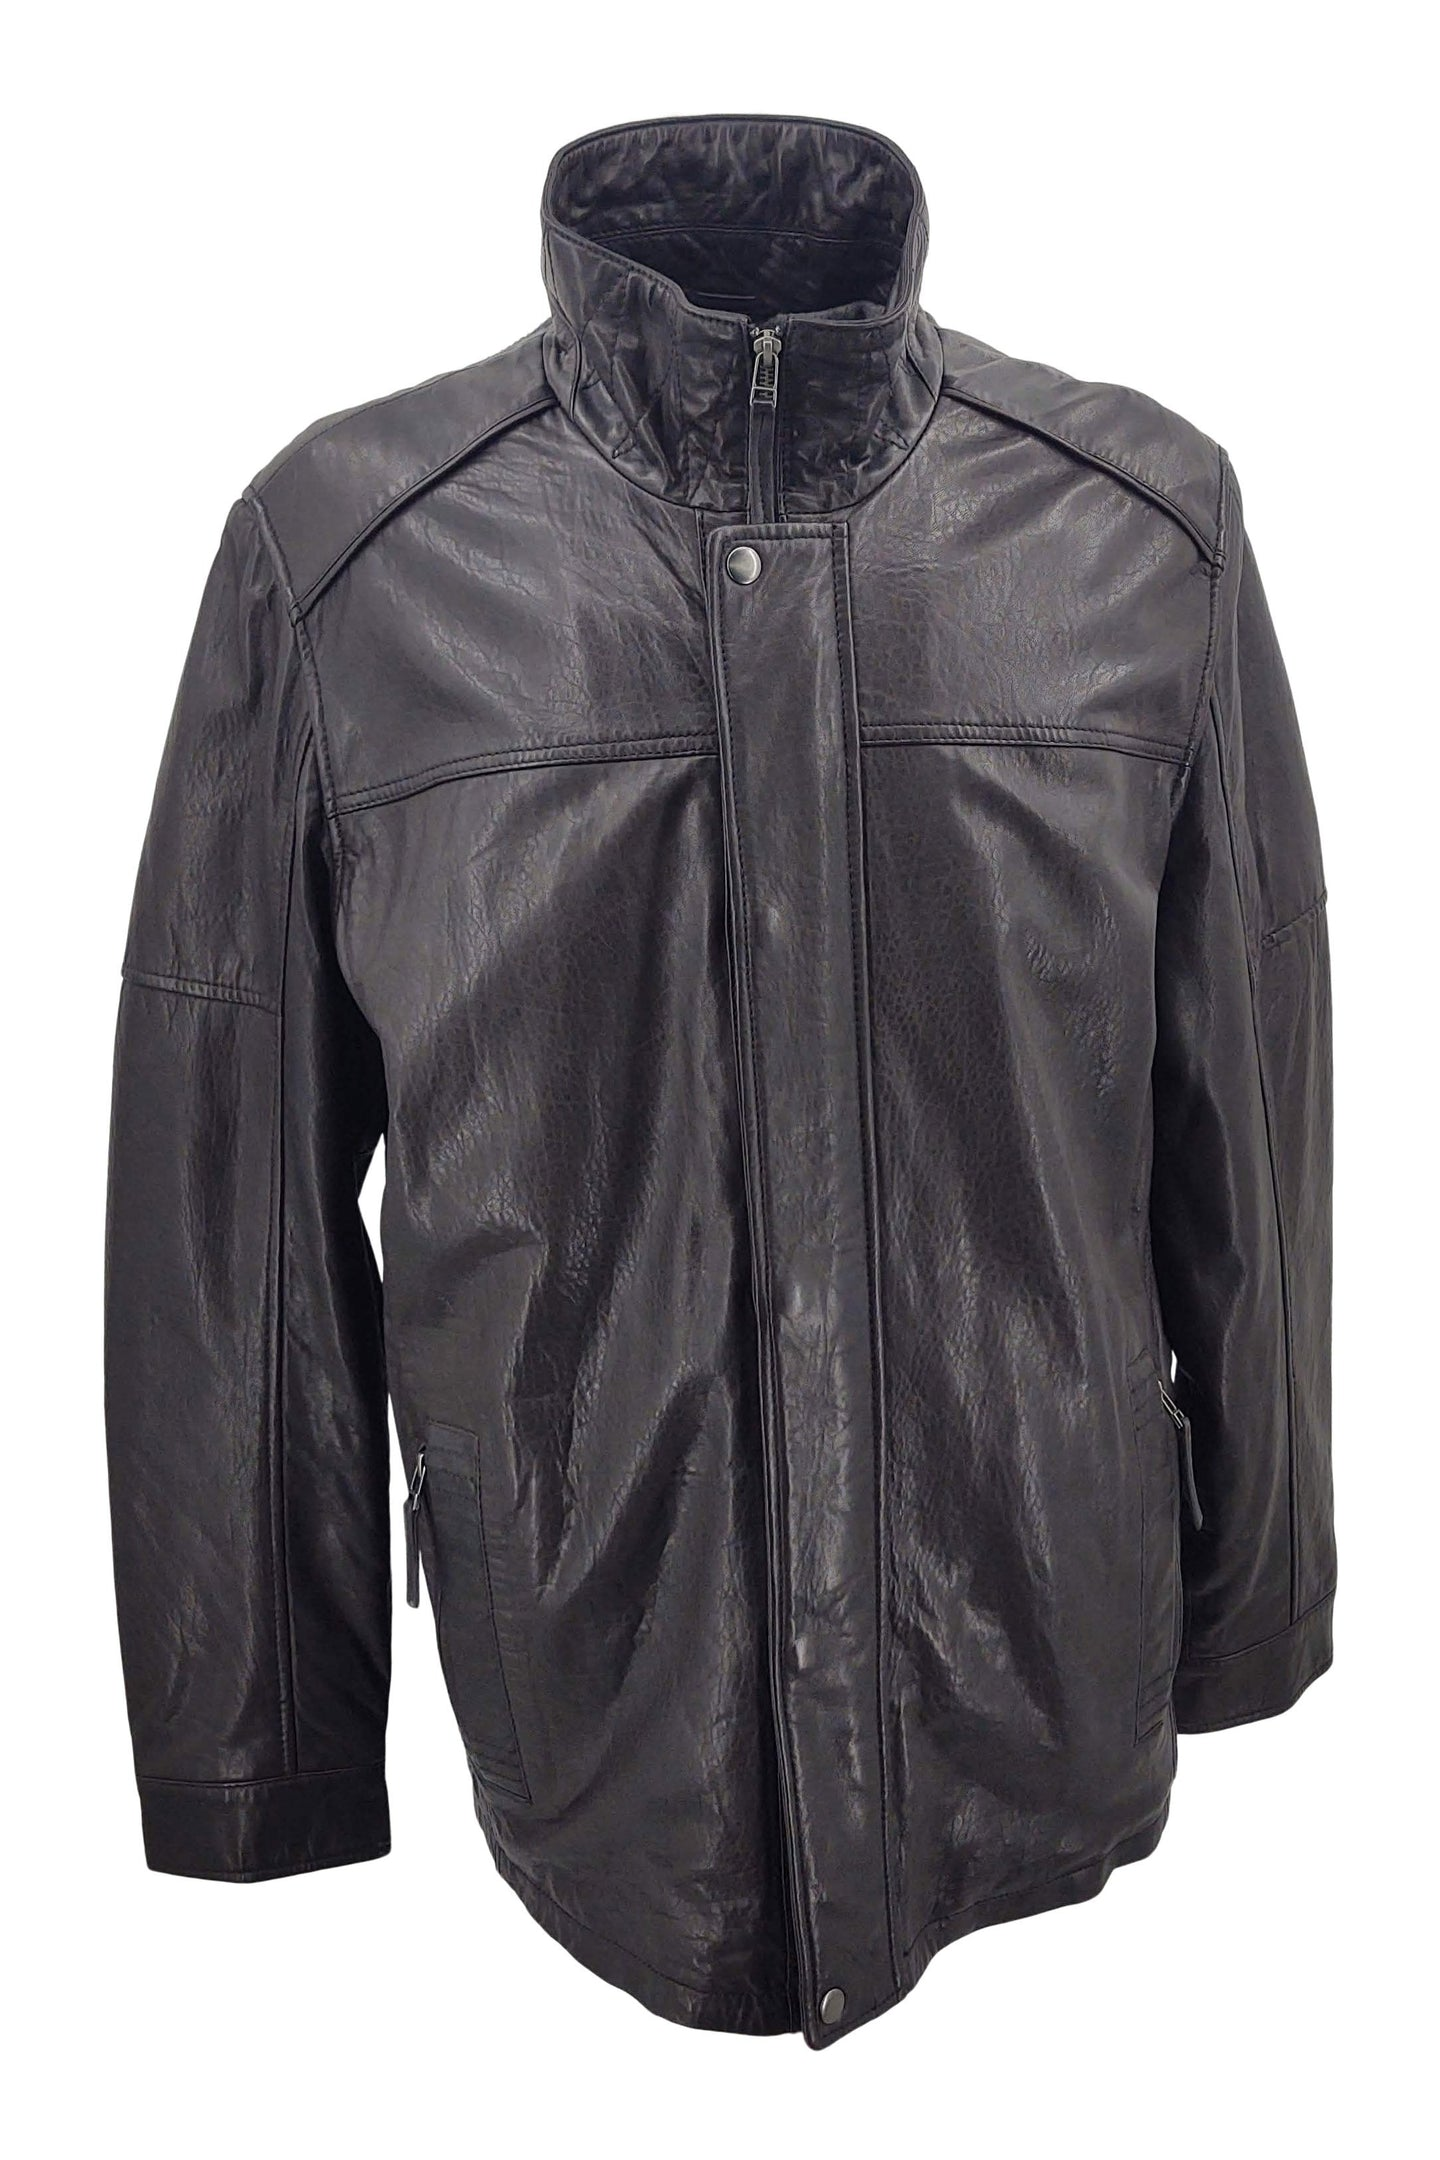 564 - Lamb New Zeeland Leather - Man - Black / Læderjakke | STAMPE PELS